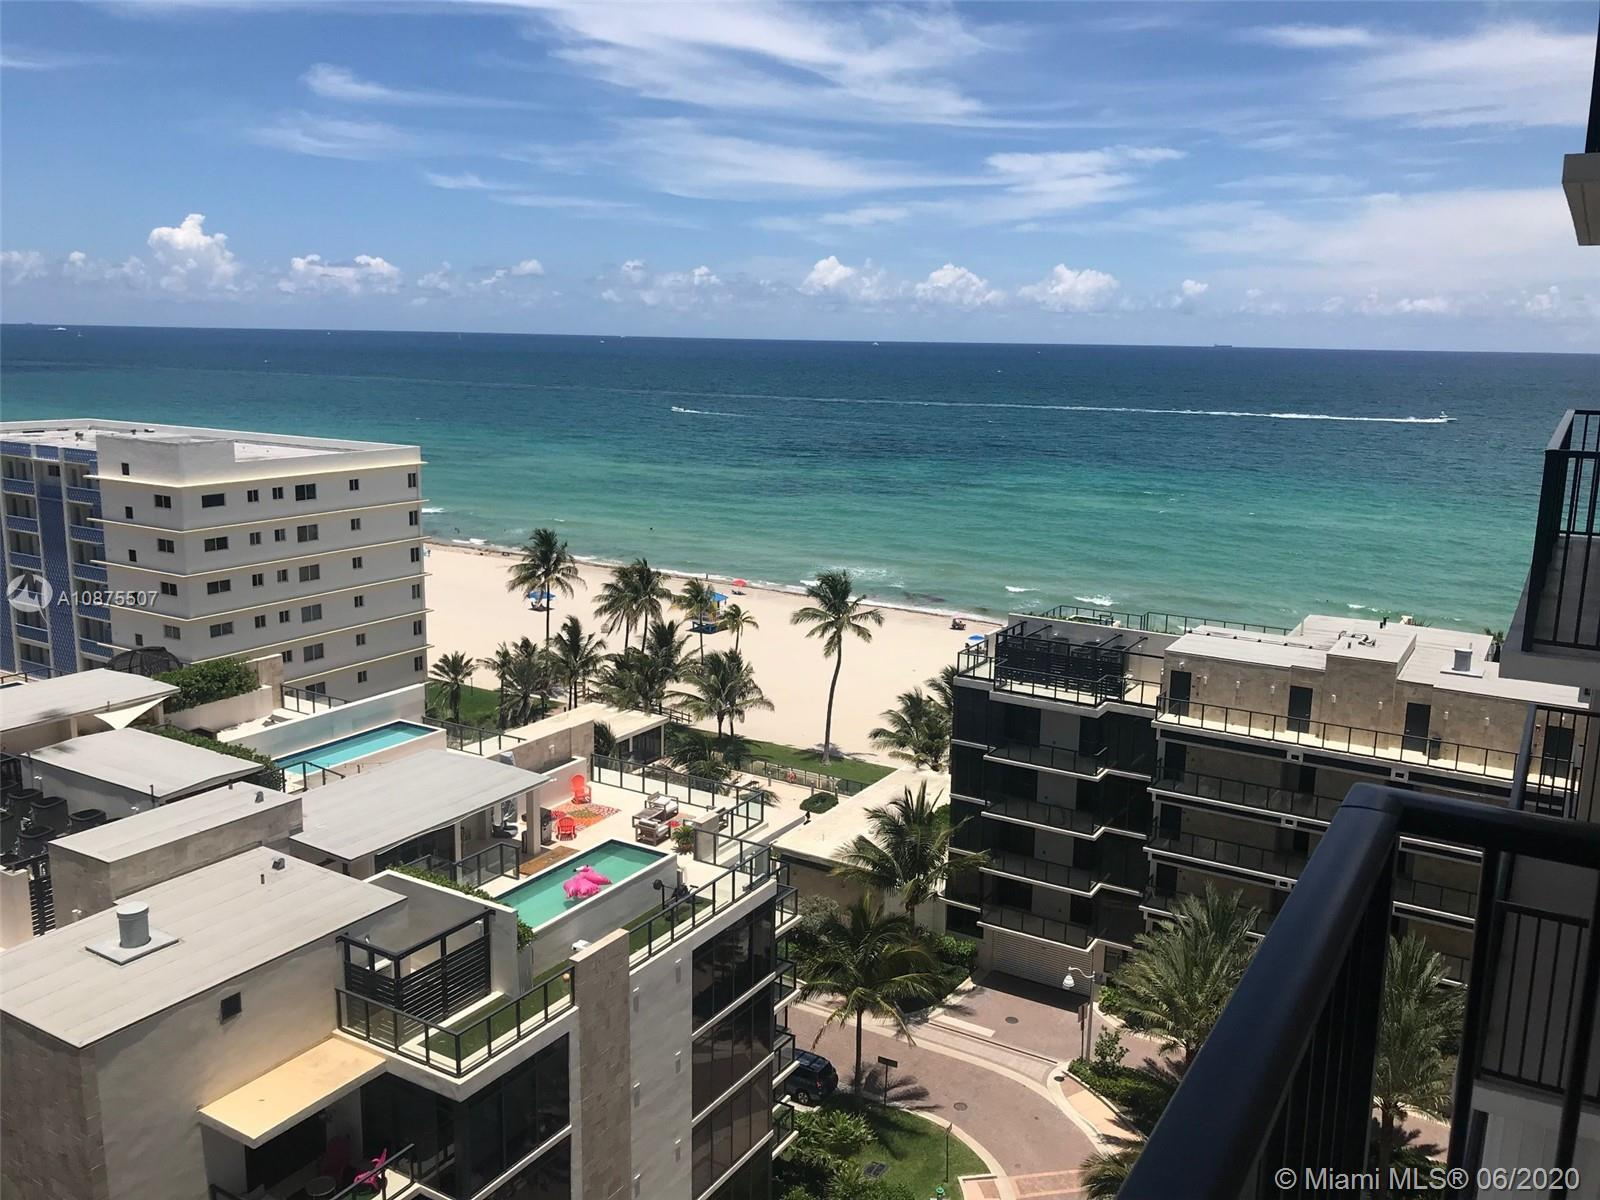 Direct beach access, sweeping views to ocean & intracoastal from wrap around balcony. Relax watching